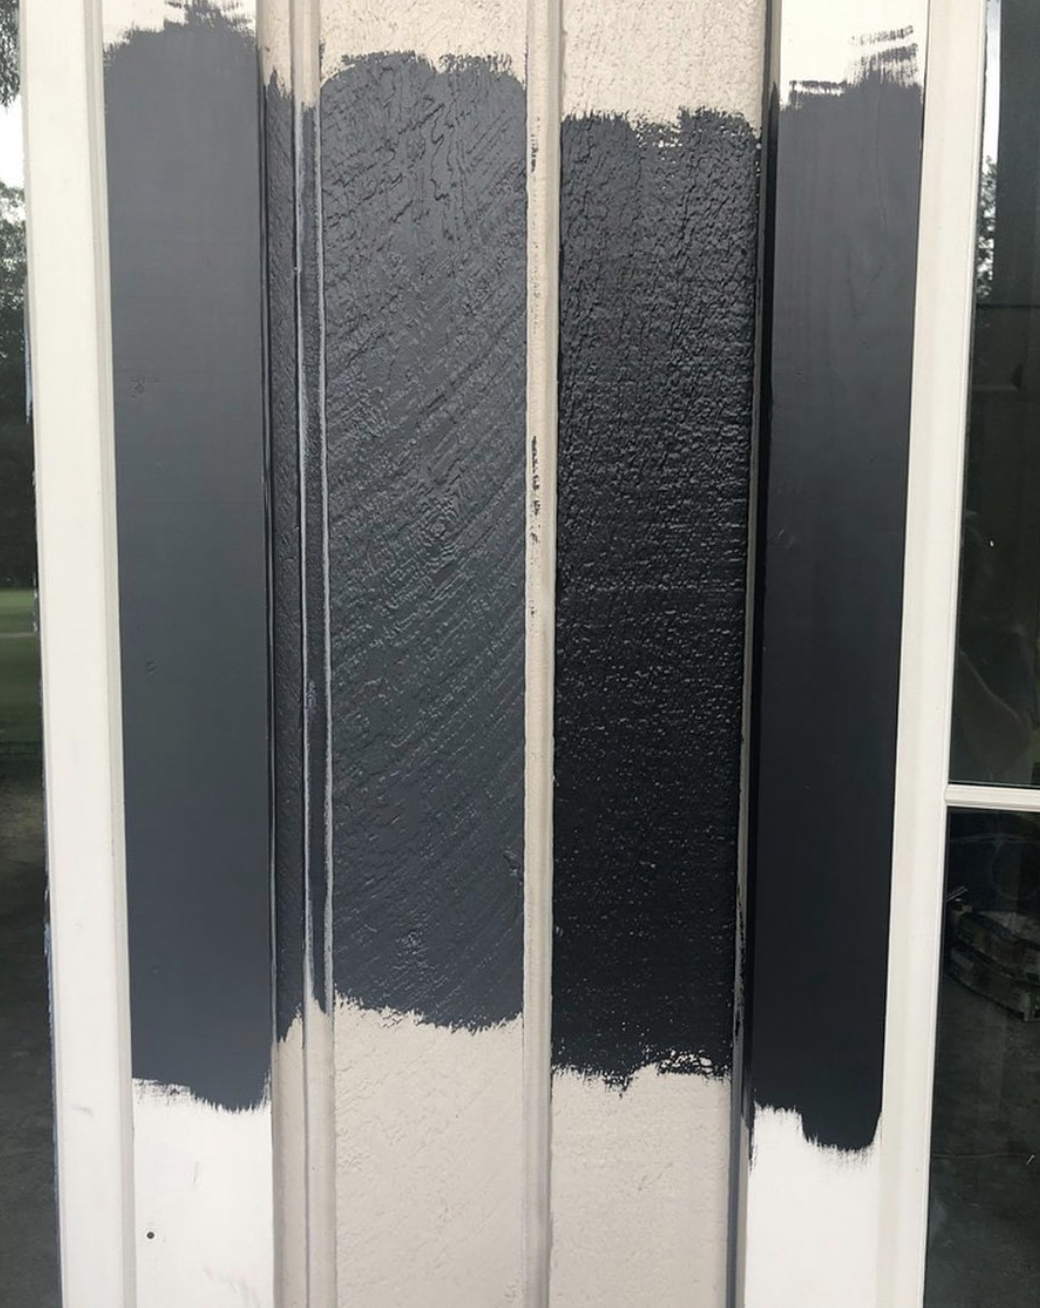 The paint samples for the exterior of our home.